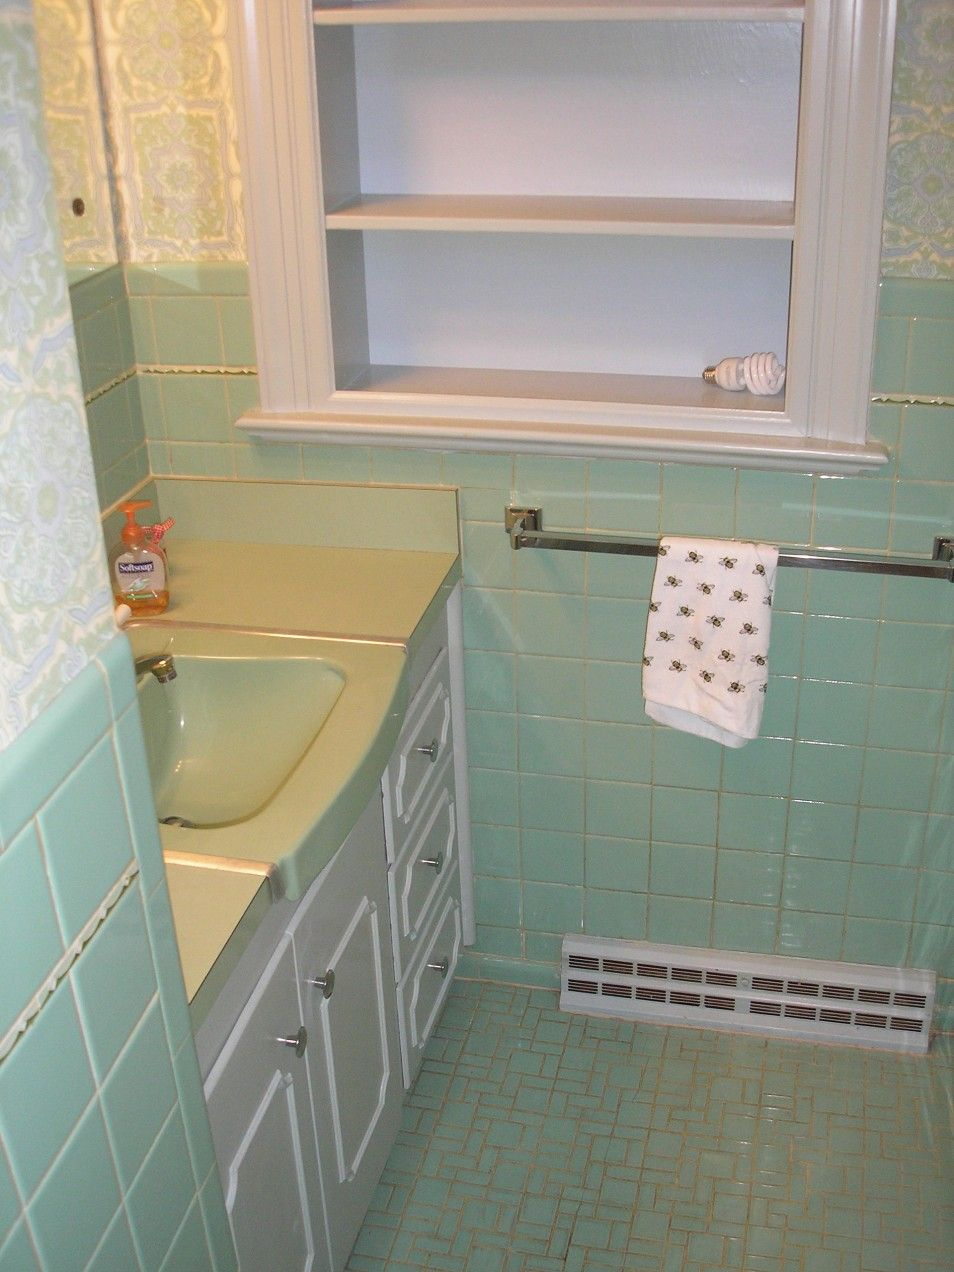 Green bathroom paint ideas - Green Bathroom Kitchen Design Backsplash Tile Jpg Alices Mint Green Bathroom Dark Green Bathroom Ideas Green